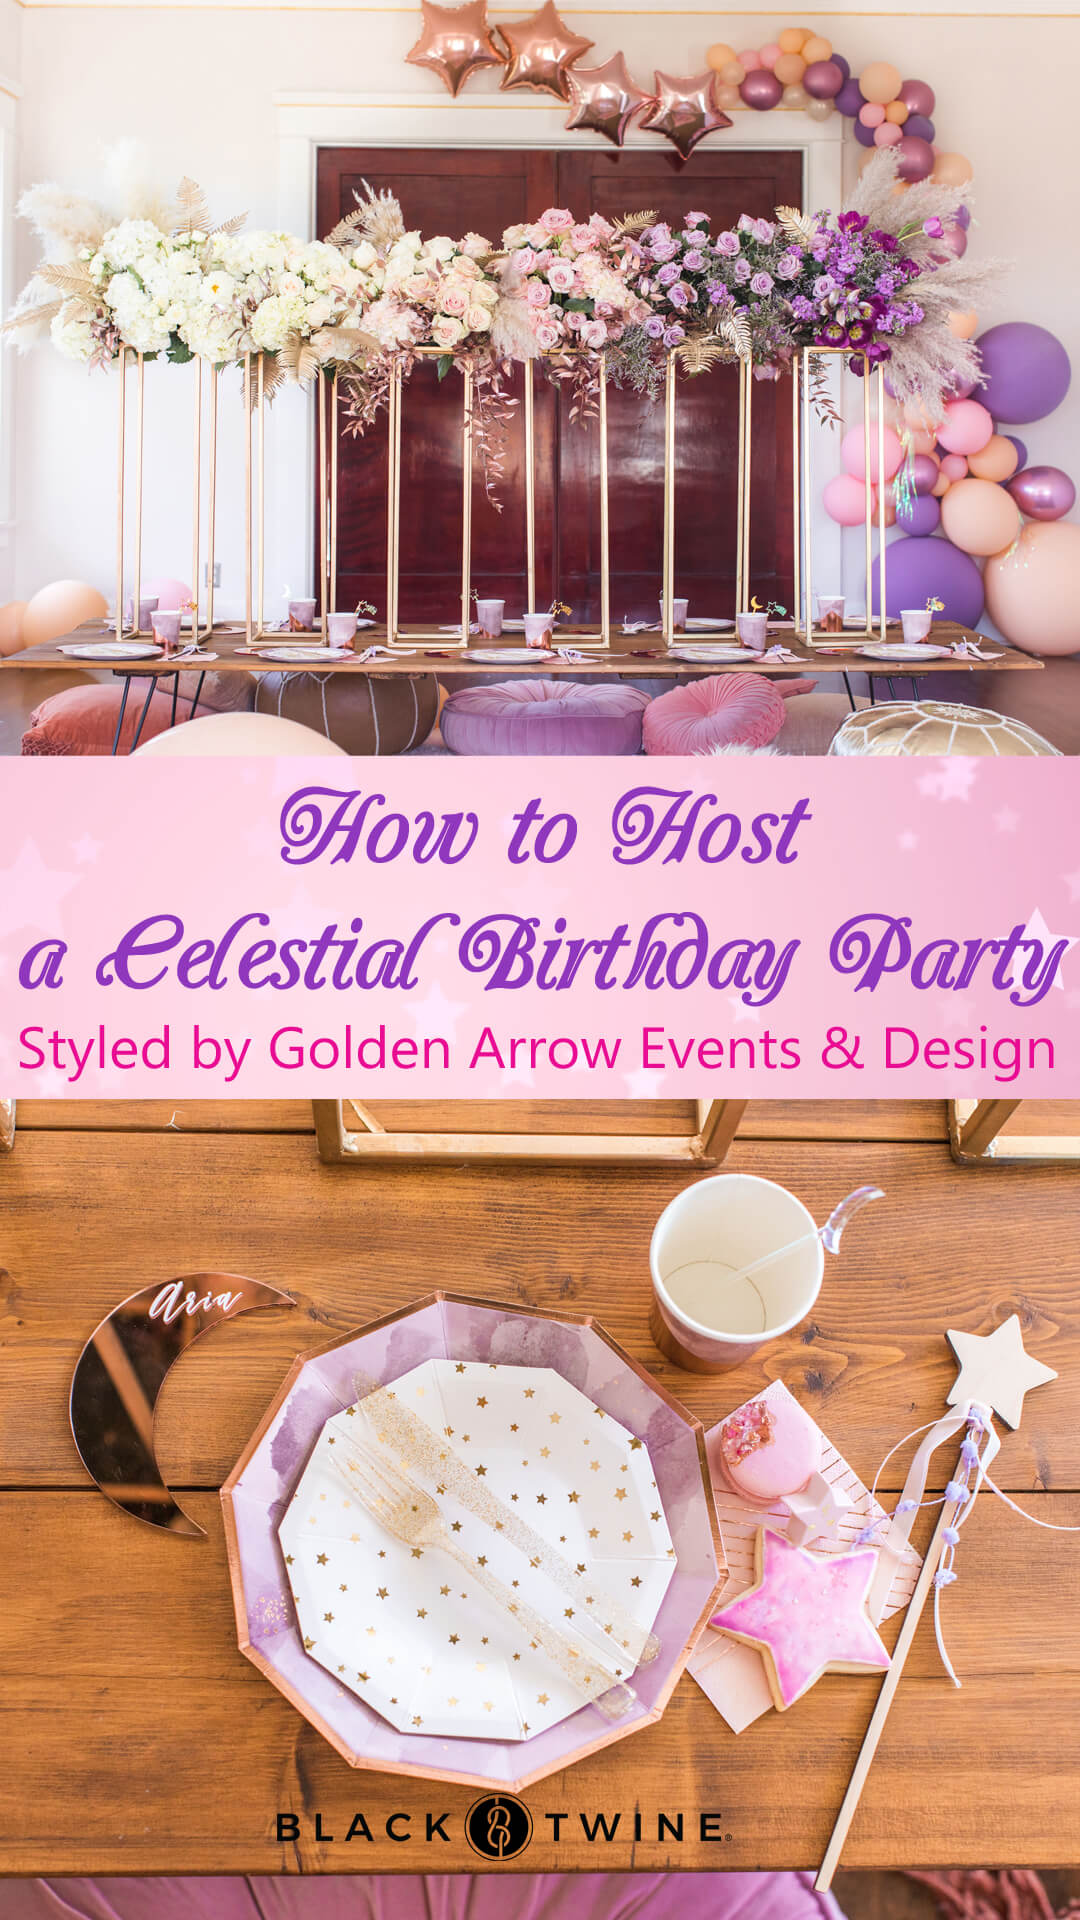 Tablescape and Place Setting from Celestial Birthday Party Styled by Golden Arrow Events & Design | Black Twine